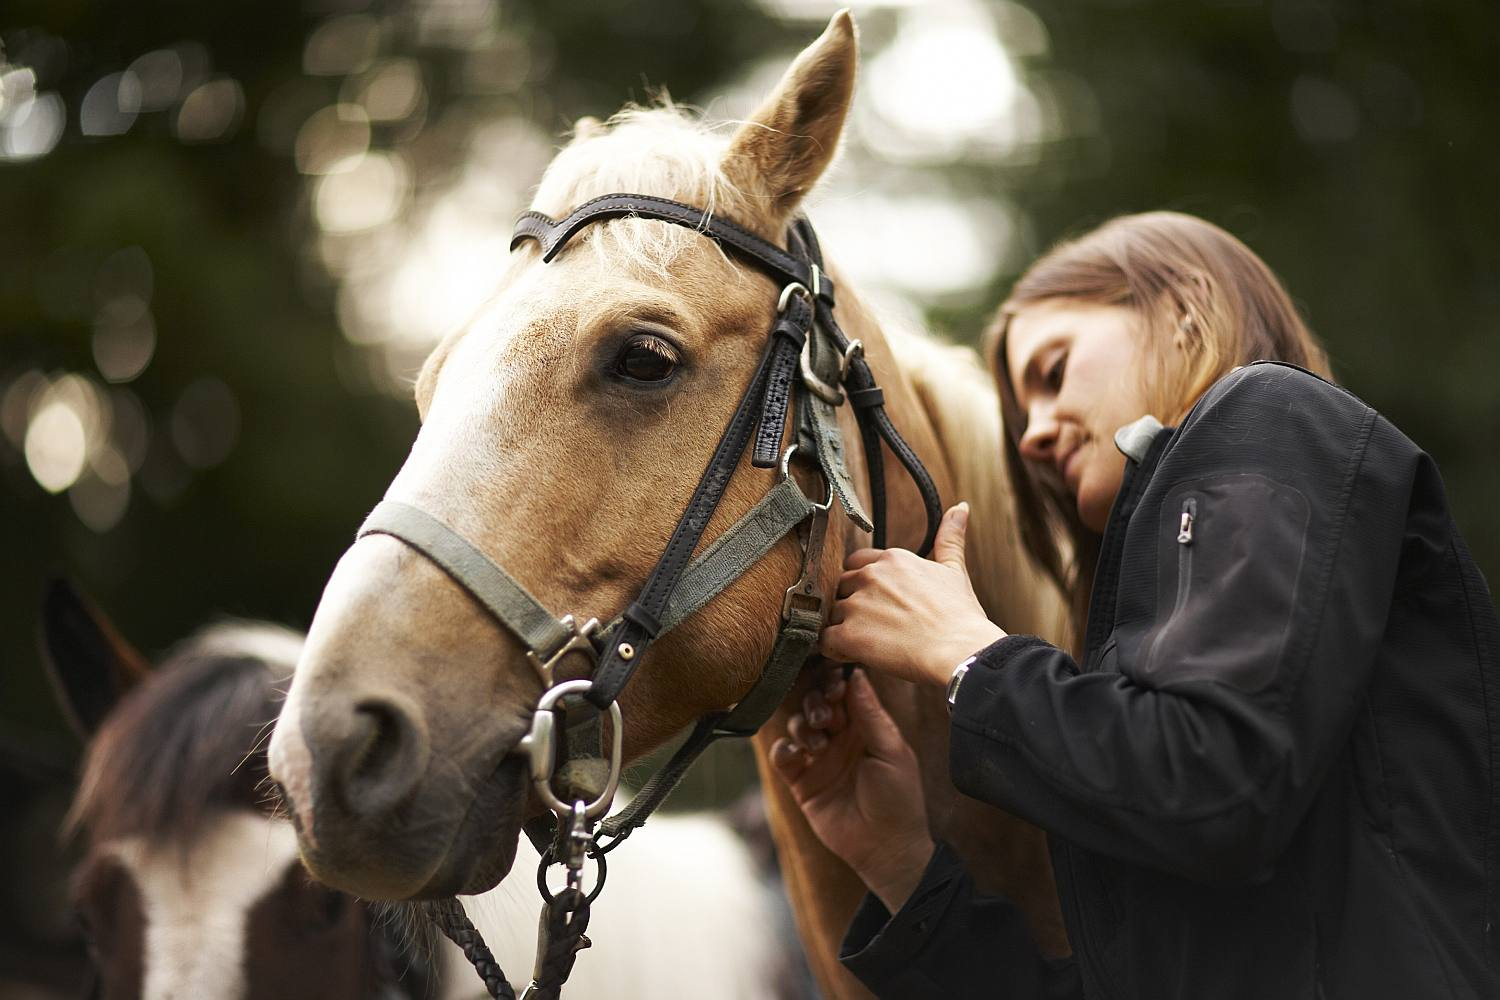 Girl doing up buckle on horse bridle.